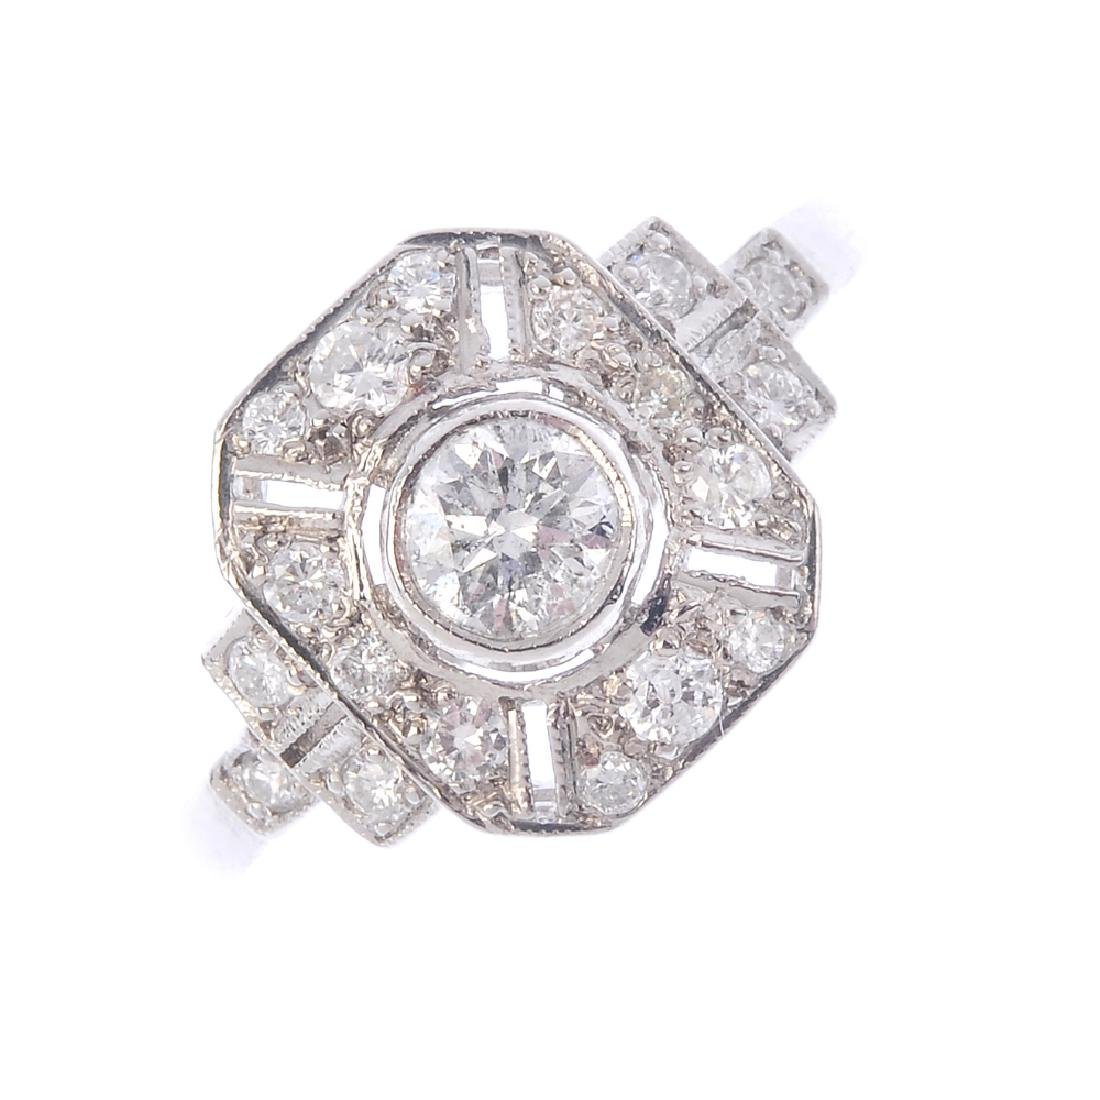 A diamond cluster ring. Of geometric design, the